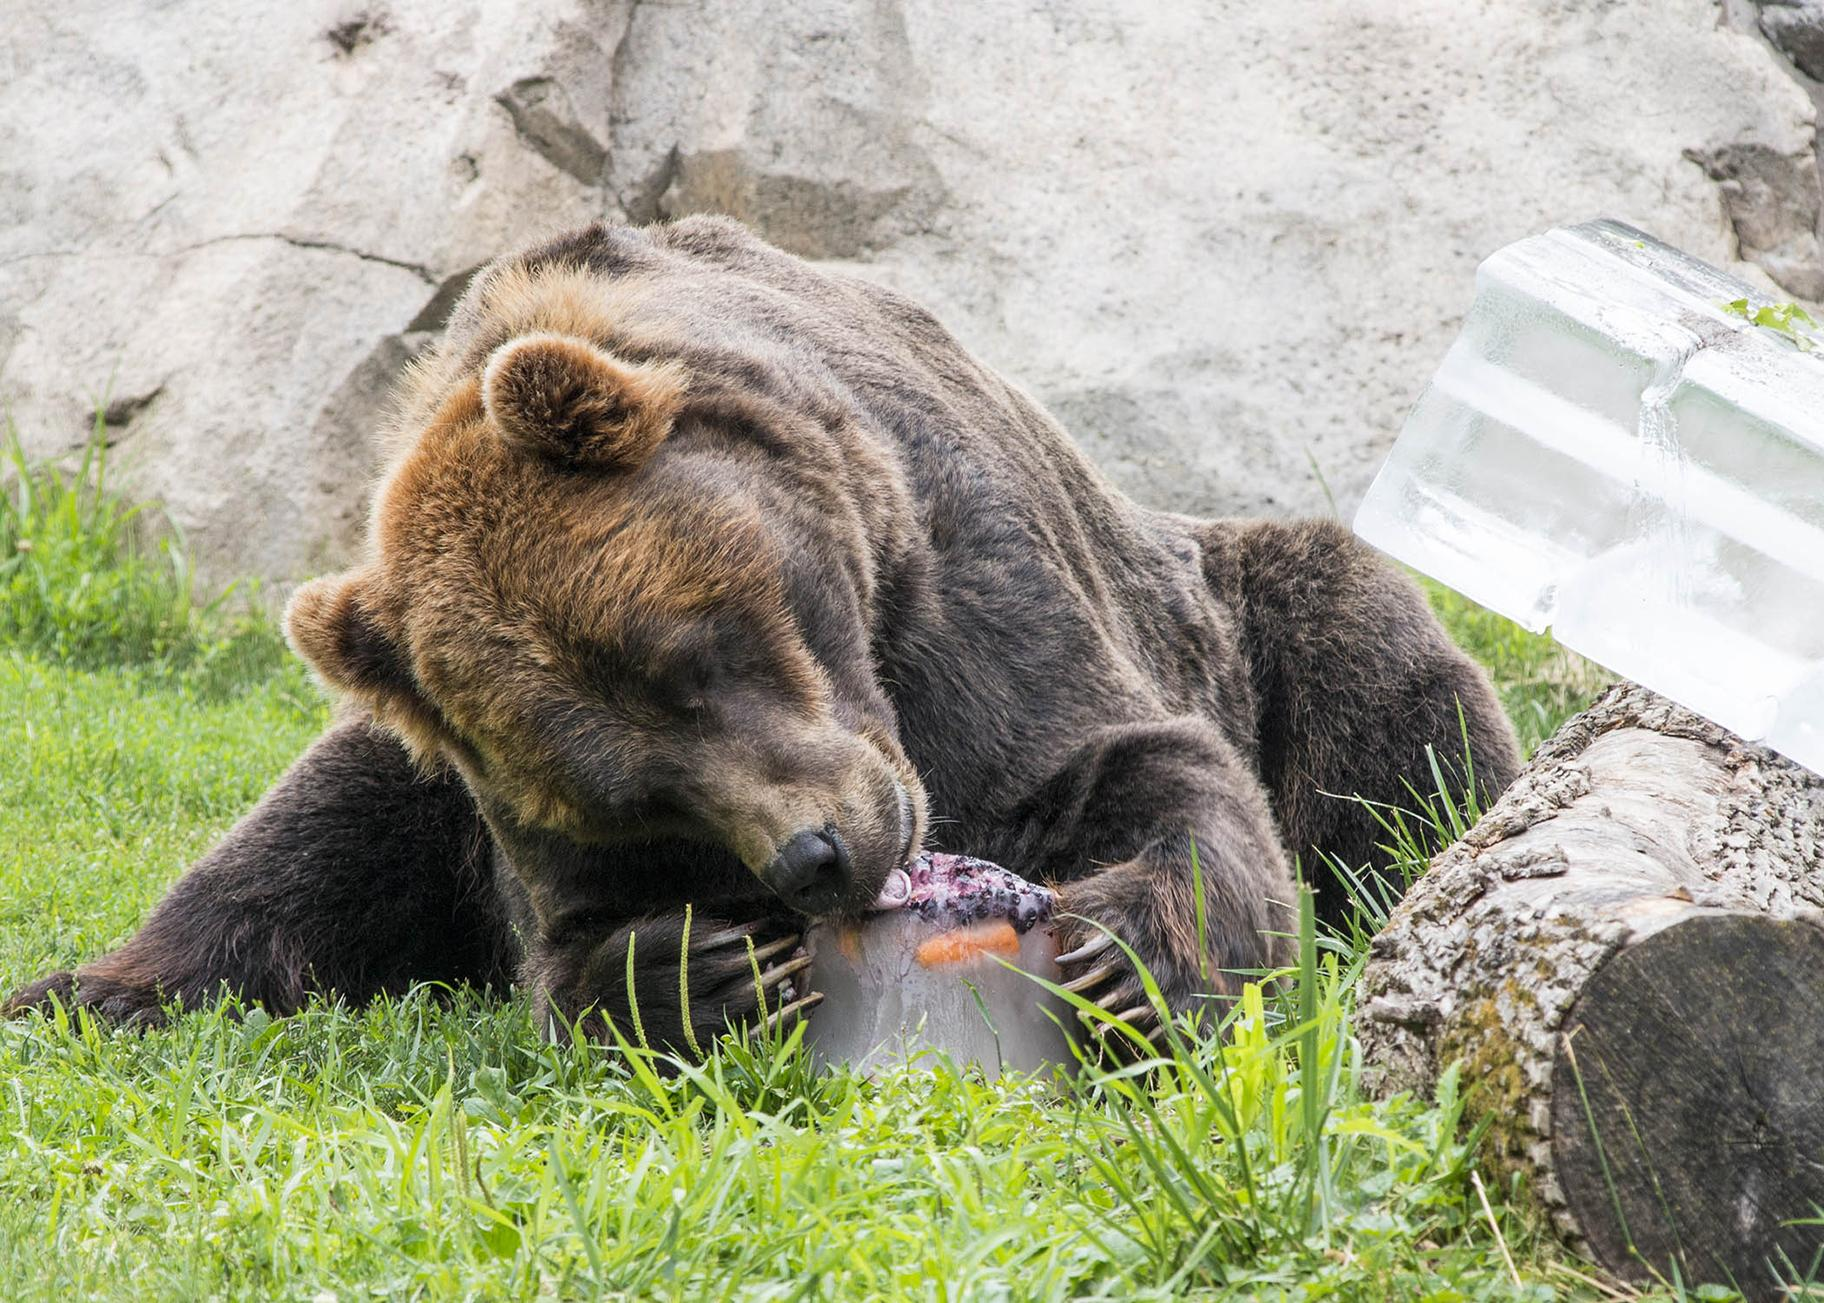 Grizzly bear Axhi plays with an ice treat filled with a variety of fruit. (Kelly Tone / Chicago Zoological Society)